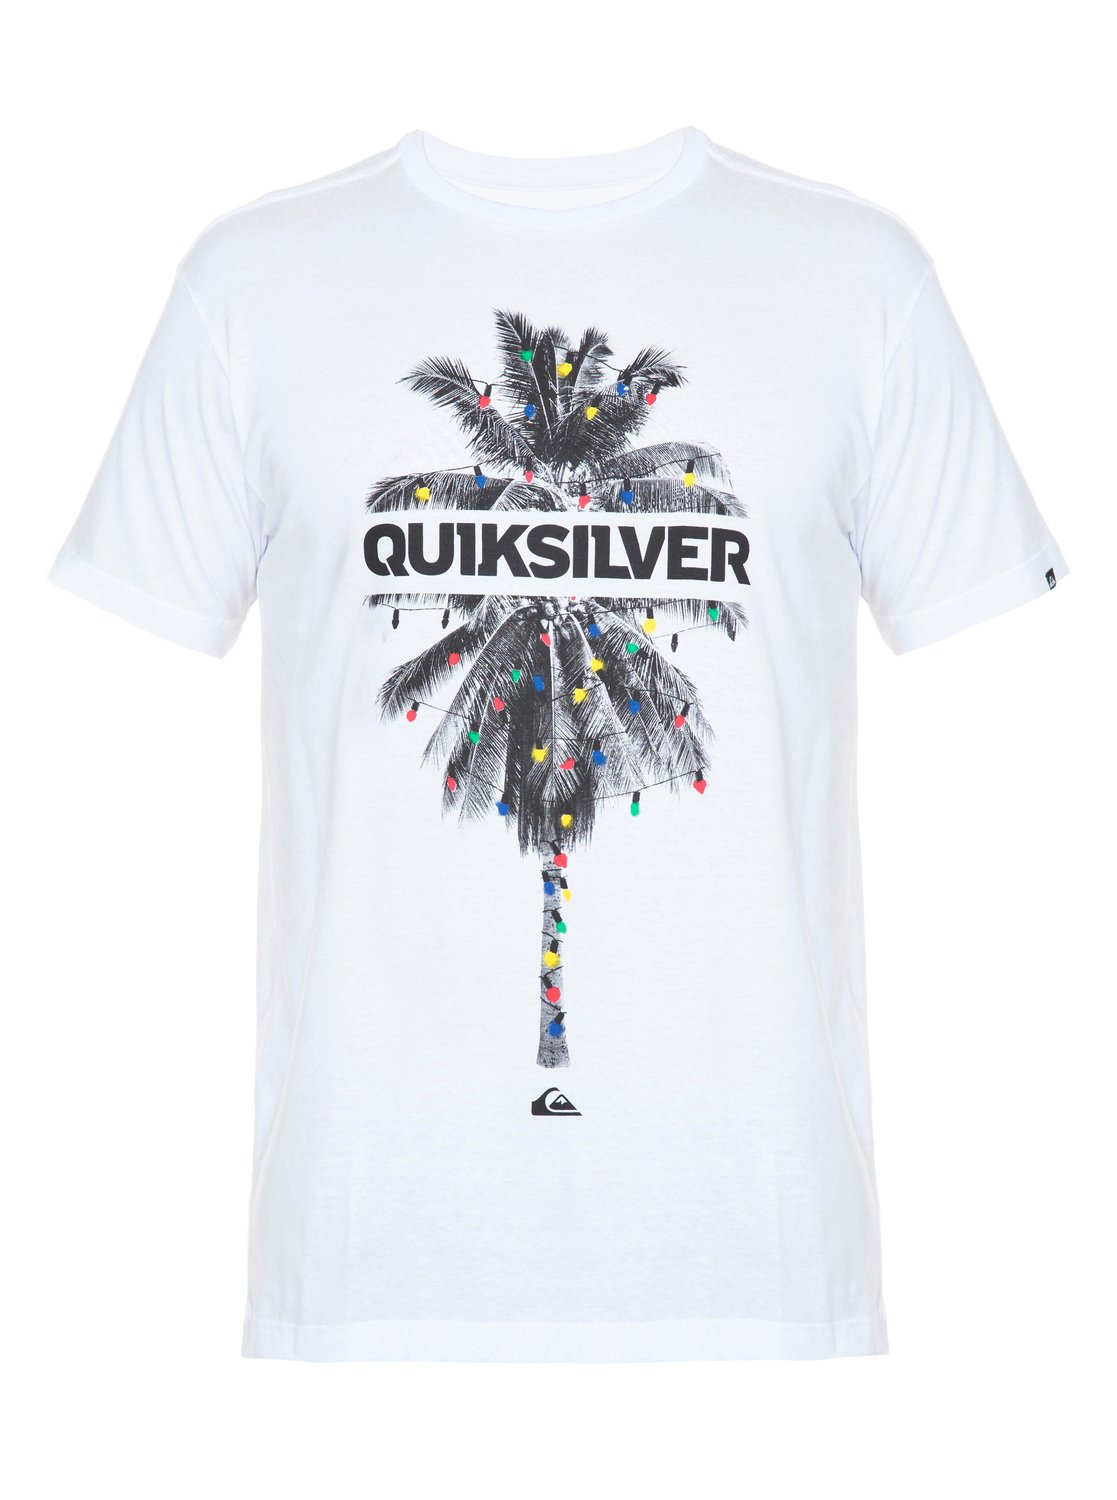 88b328e8d1dd3 0 Camiseta Slim Fit masculina Palm Lights BR61241448 Quiksilver